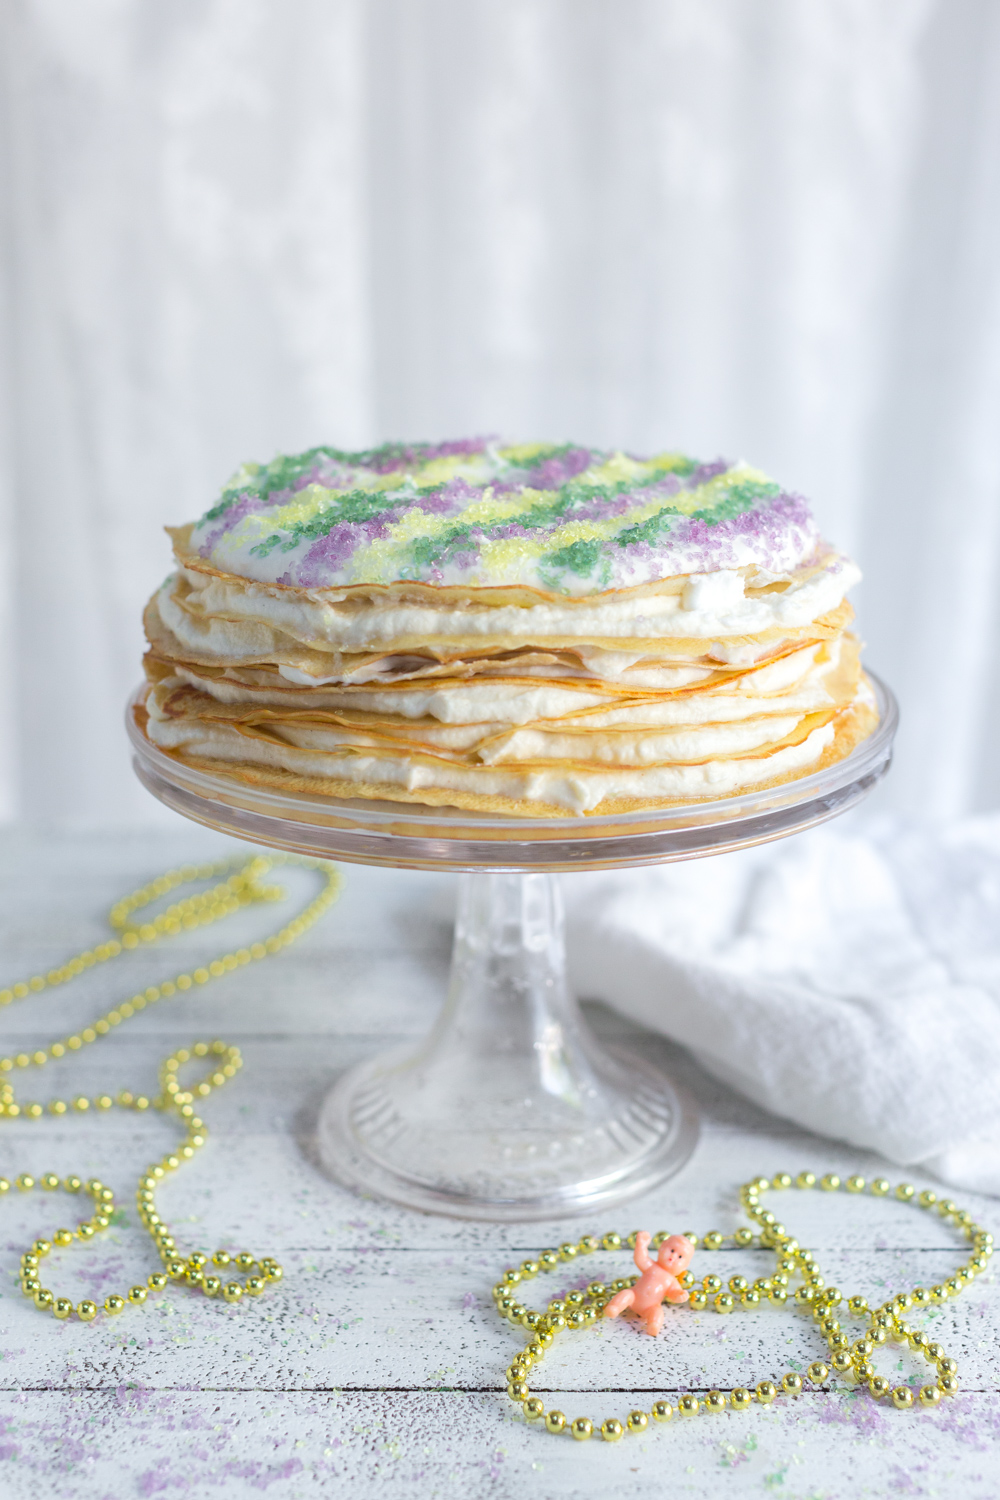 Crepe King Cake from Baking The Goods